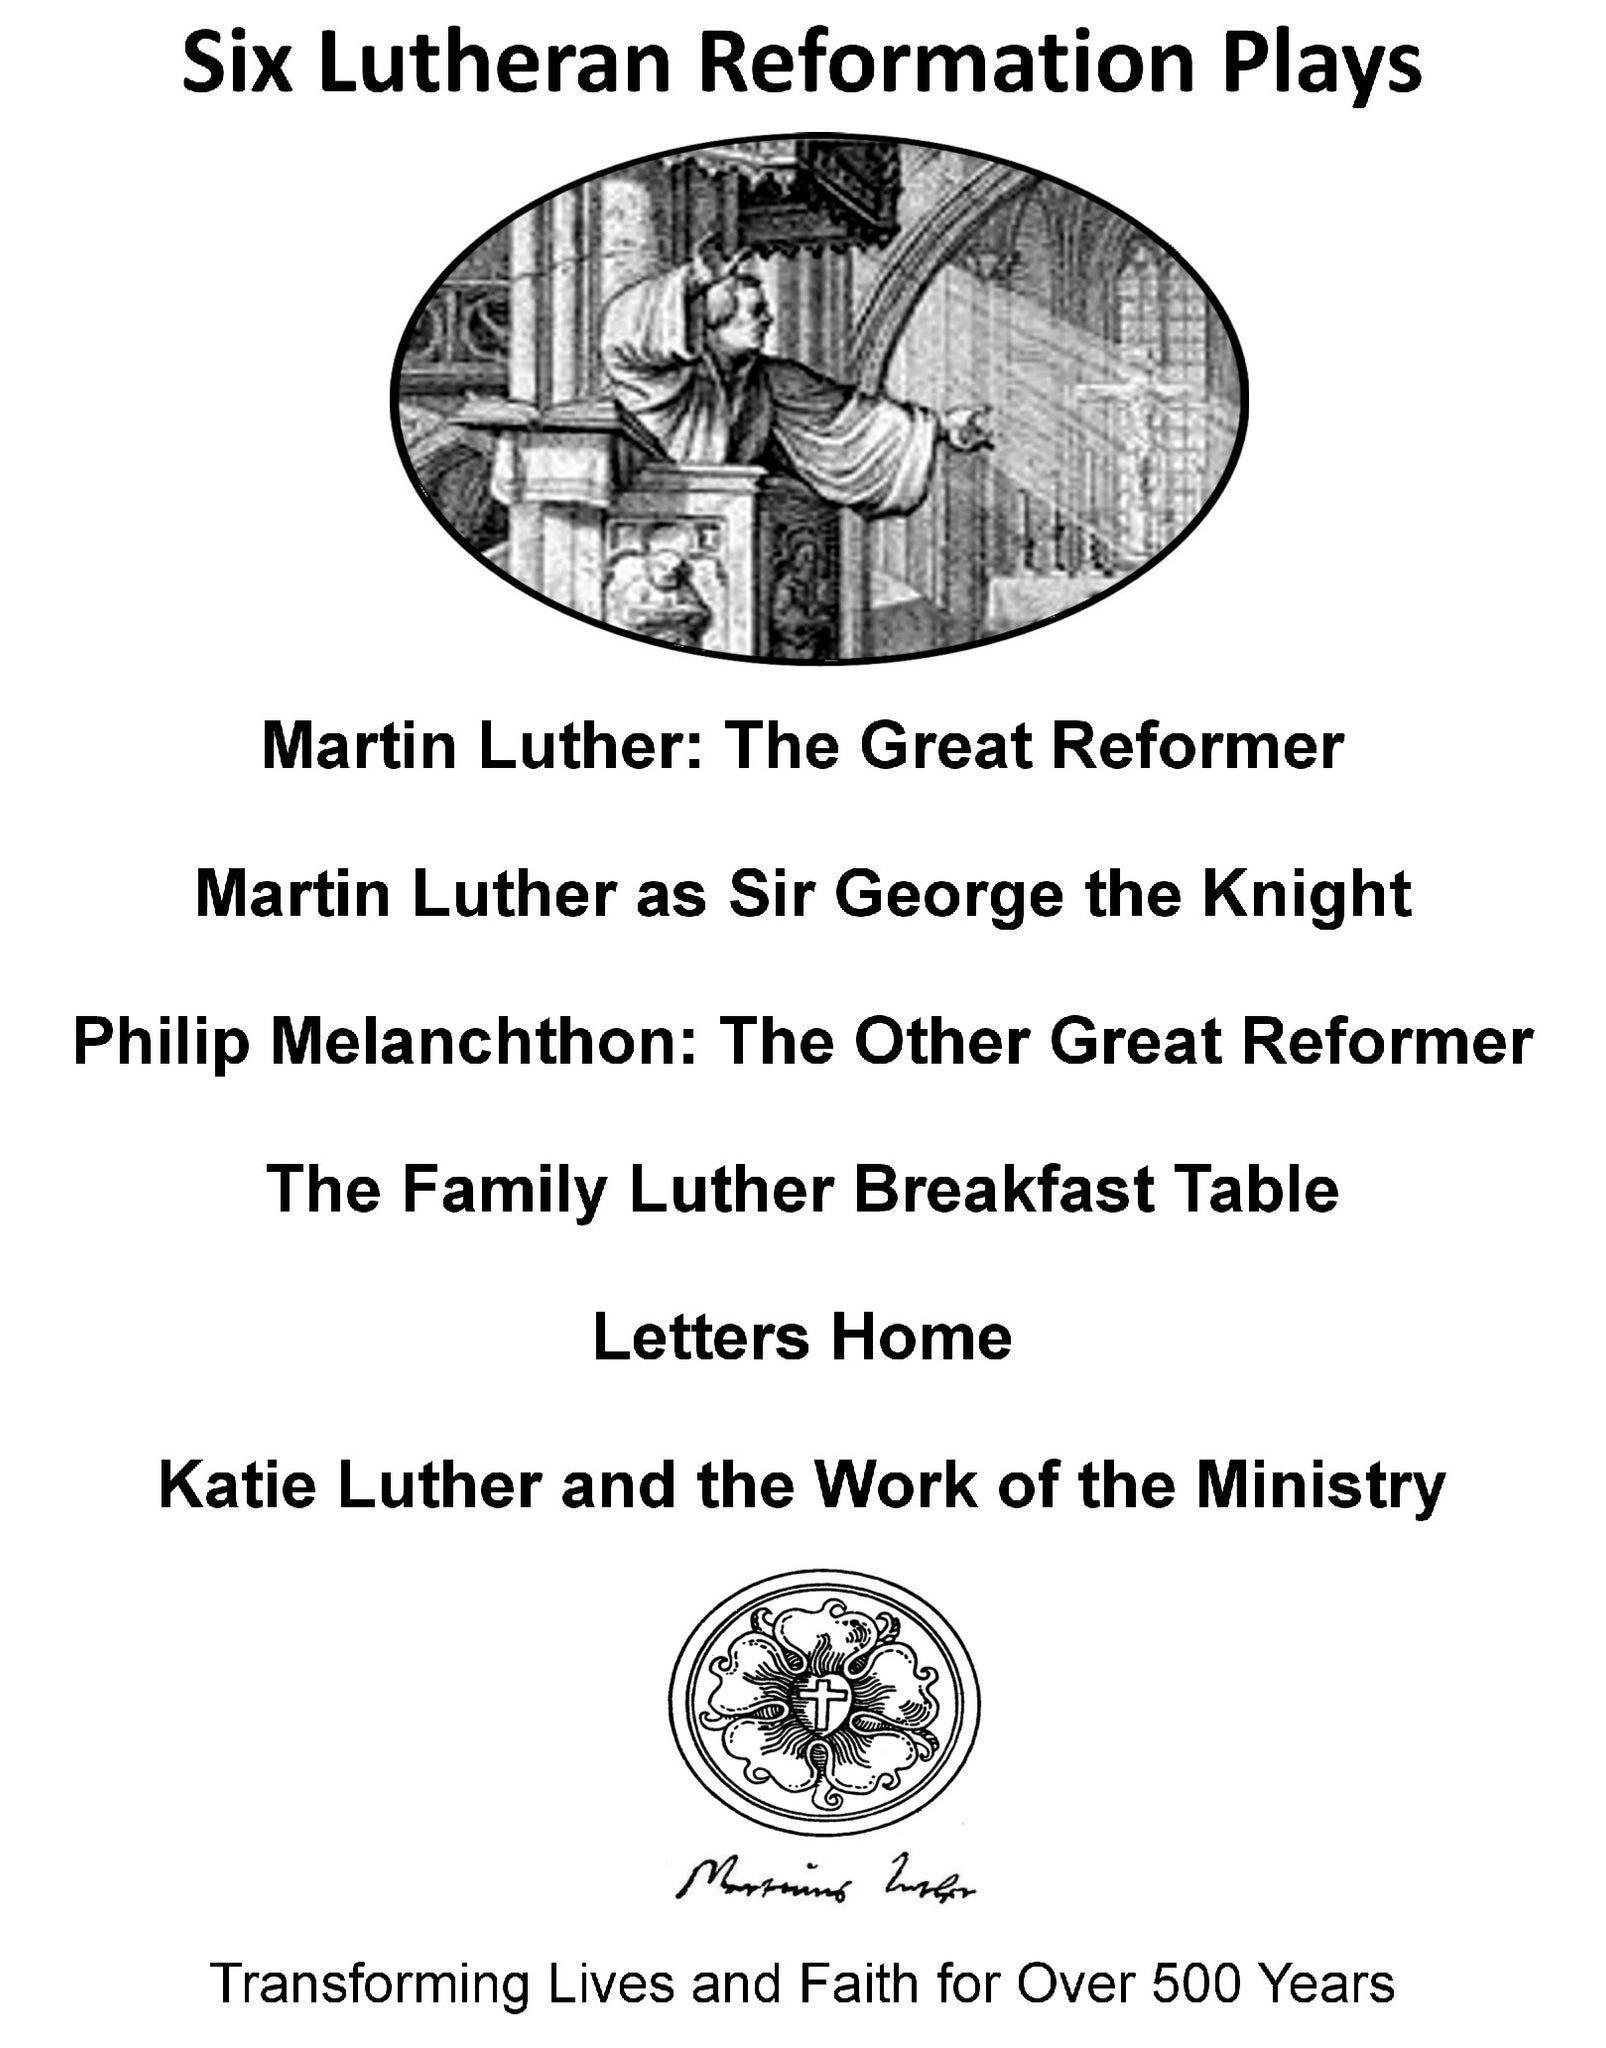 Get All Six Lutheran Reformation Plays and Save $